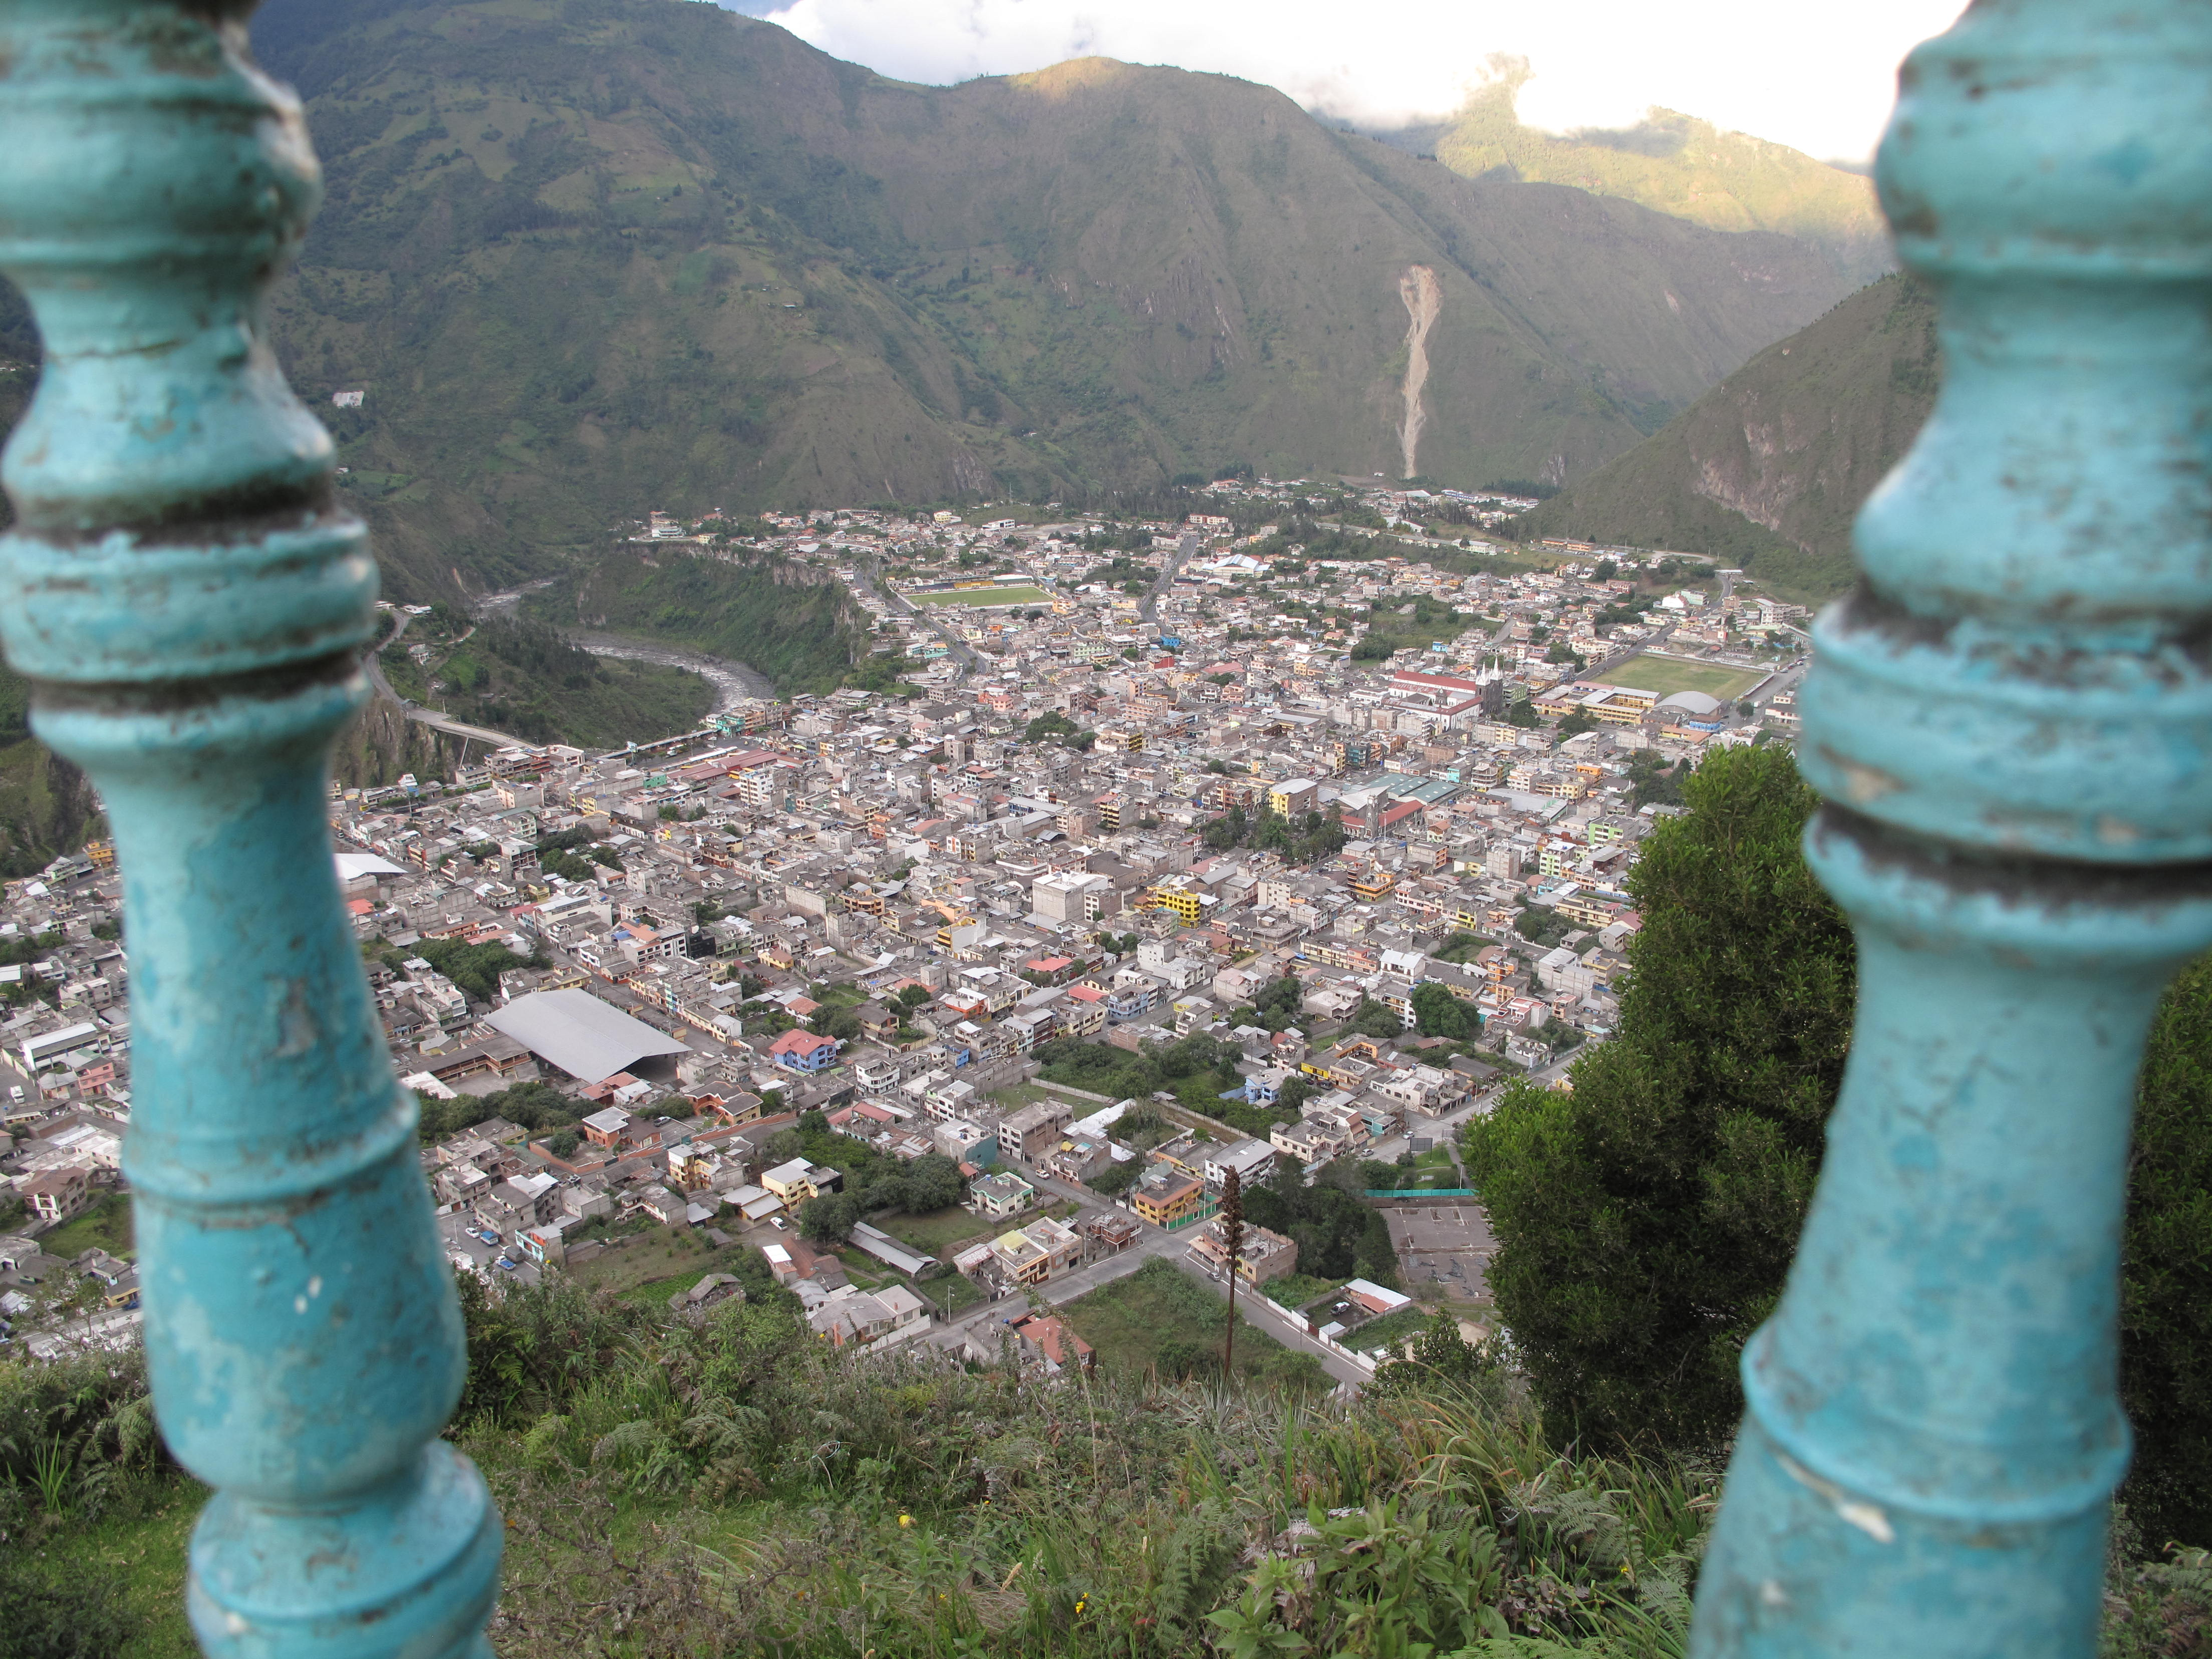 A short 45 minute hike from Banos, this town is overshadowed by the statue of the Virgin Mary, which has gaurded the town from destruction for centuries.